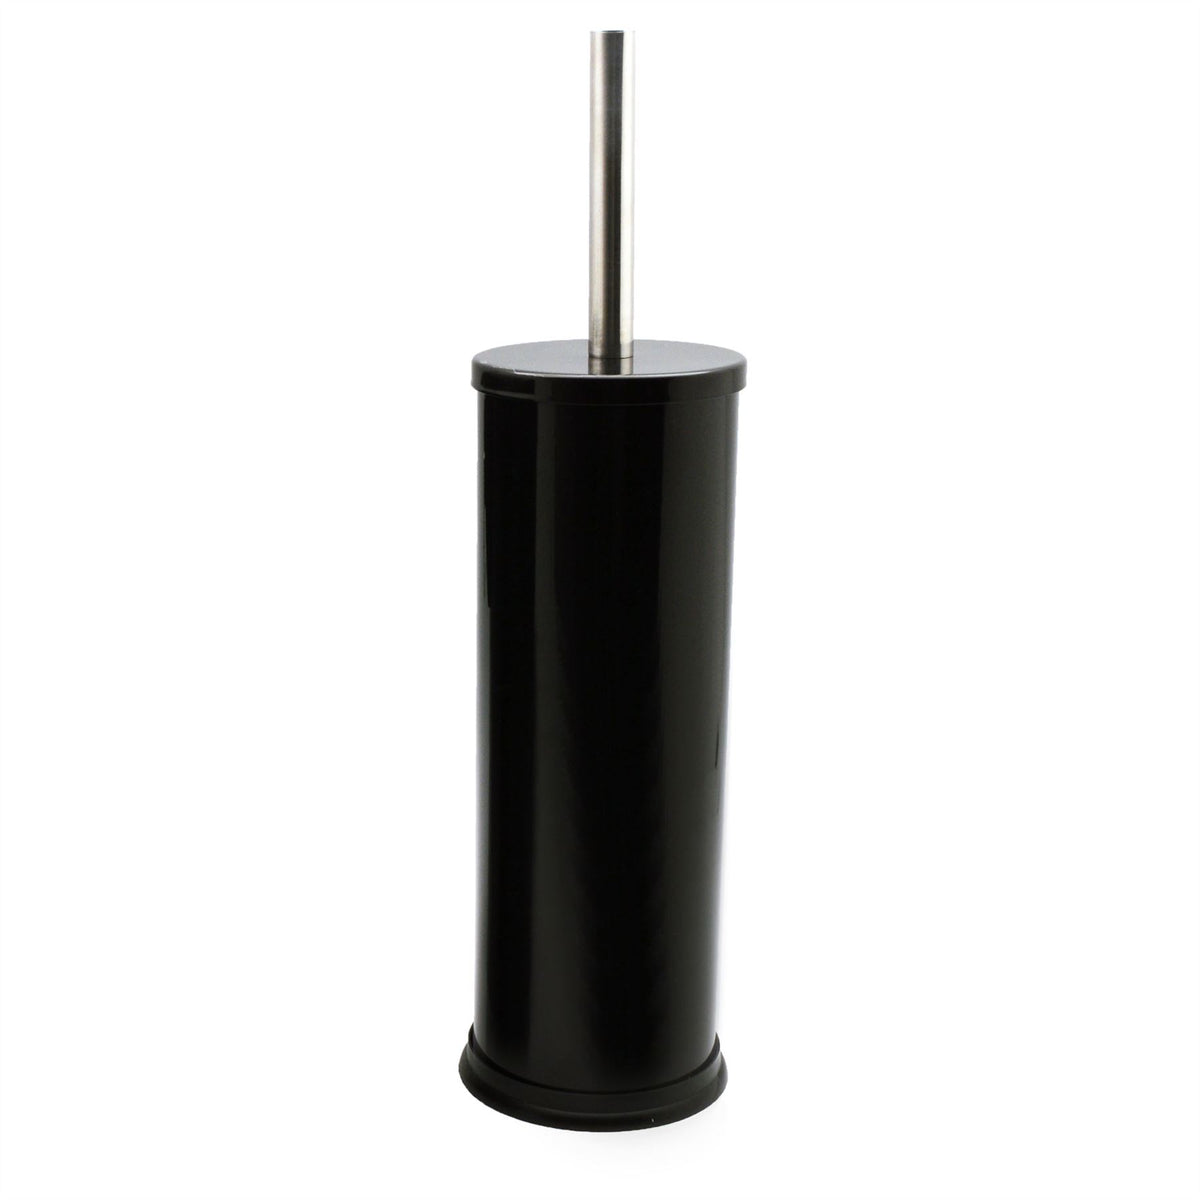 Harbour Housewares Bathroom Toilet Brush & Holder Set - Black